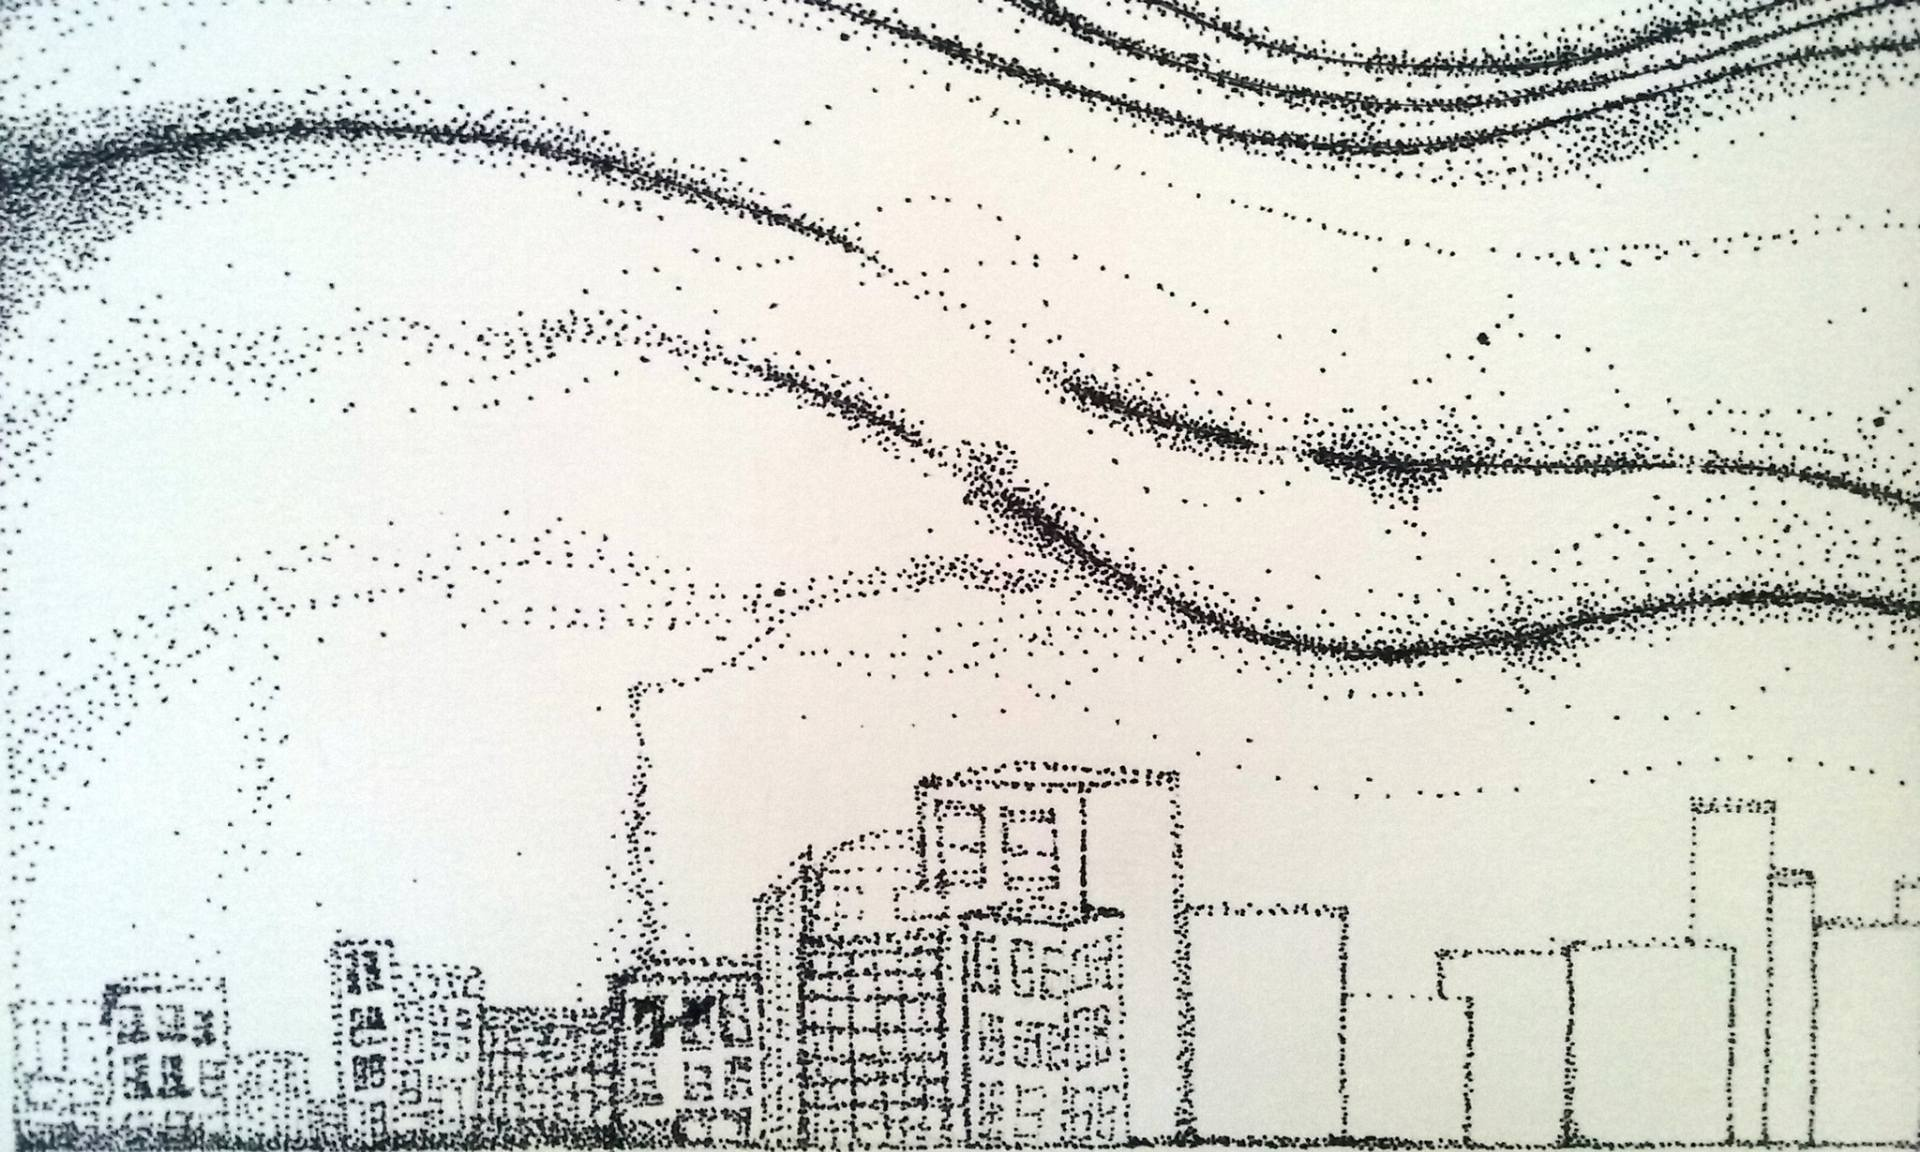 1920x1152 Saatchi Art Falling Stars Drawing By Becky Stoup